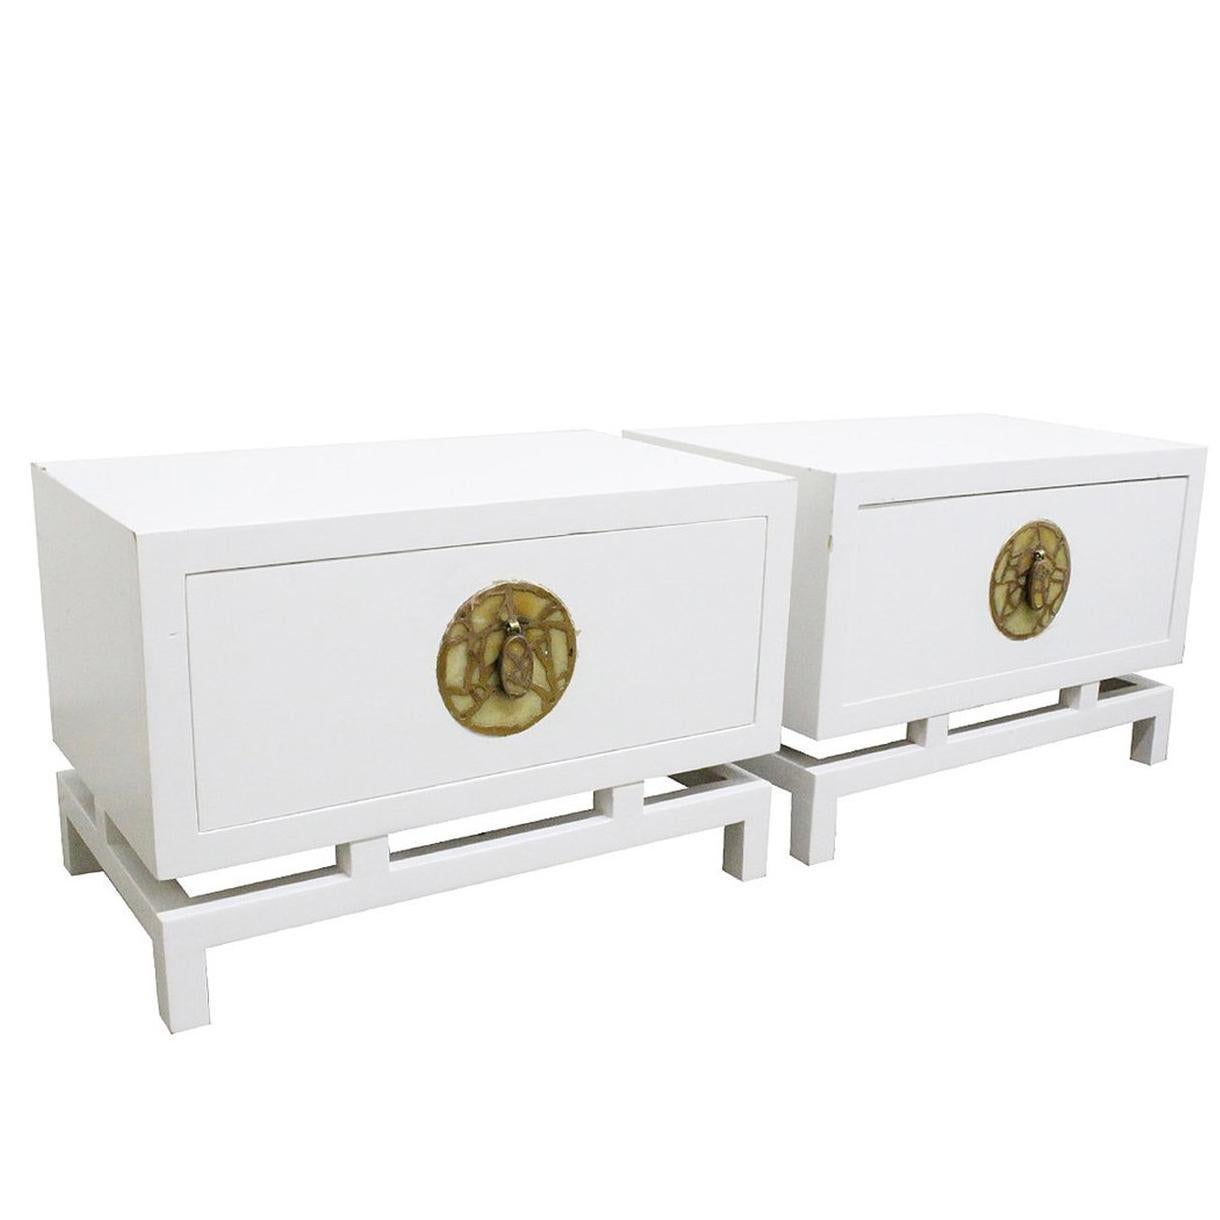 Pair of Lacquered Nightstands/Side Tables by Frank Kyle, Pepe Mendoza Hardware